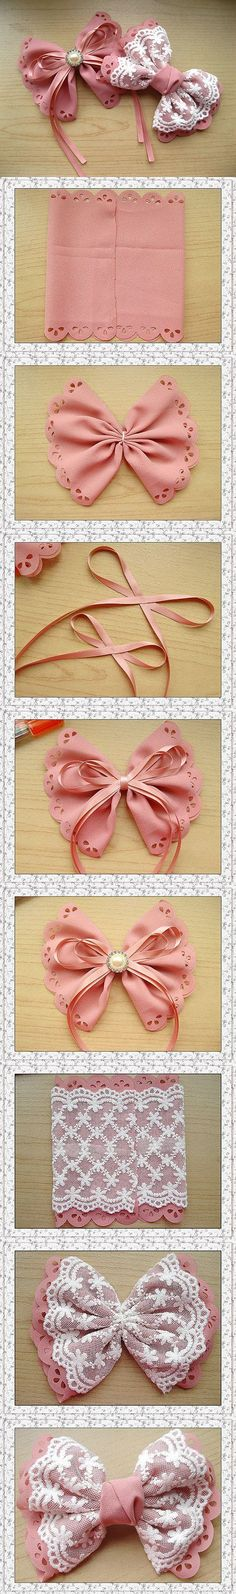 Adorable and easy!!!  I want to try with vintage handkerchiefs.